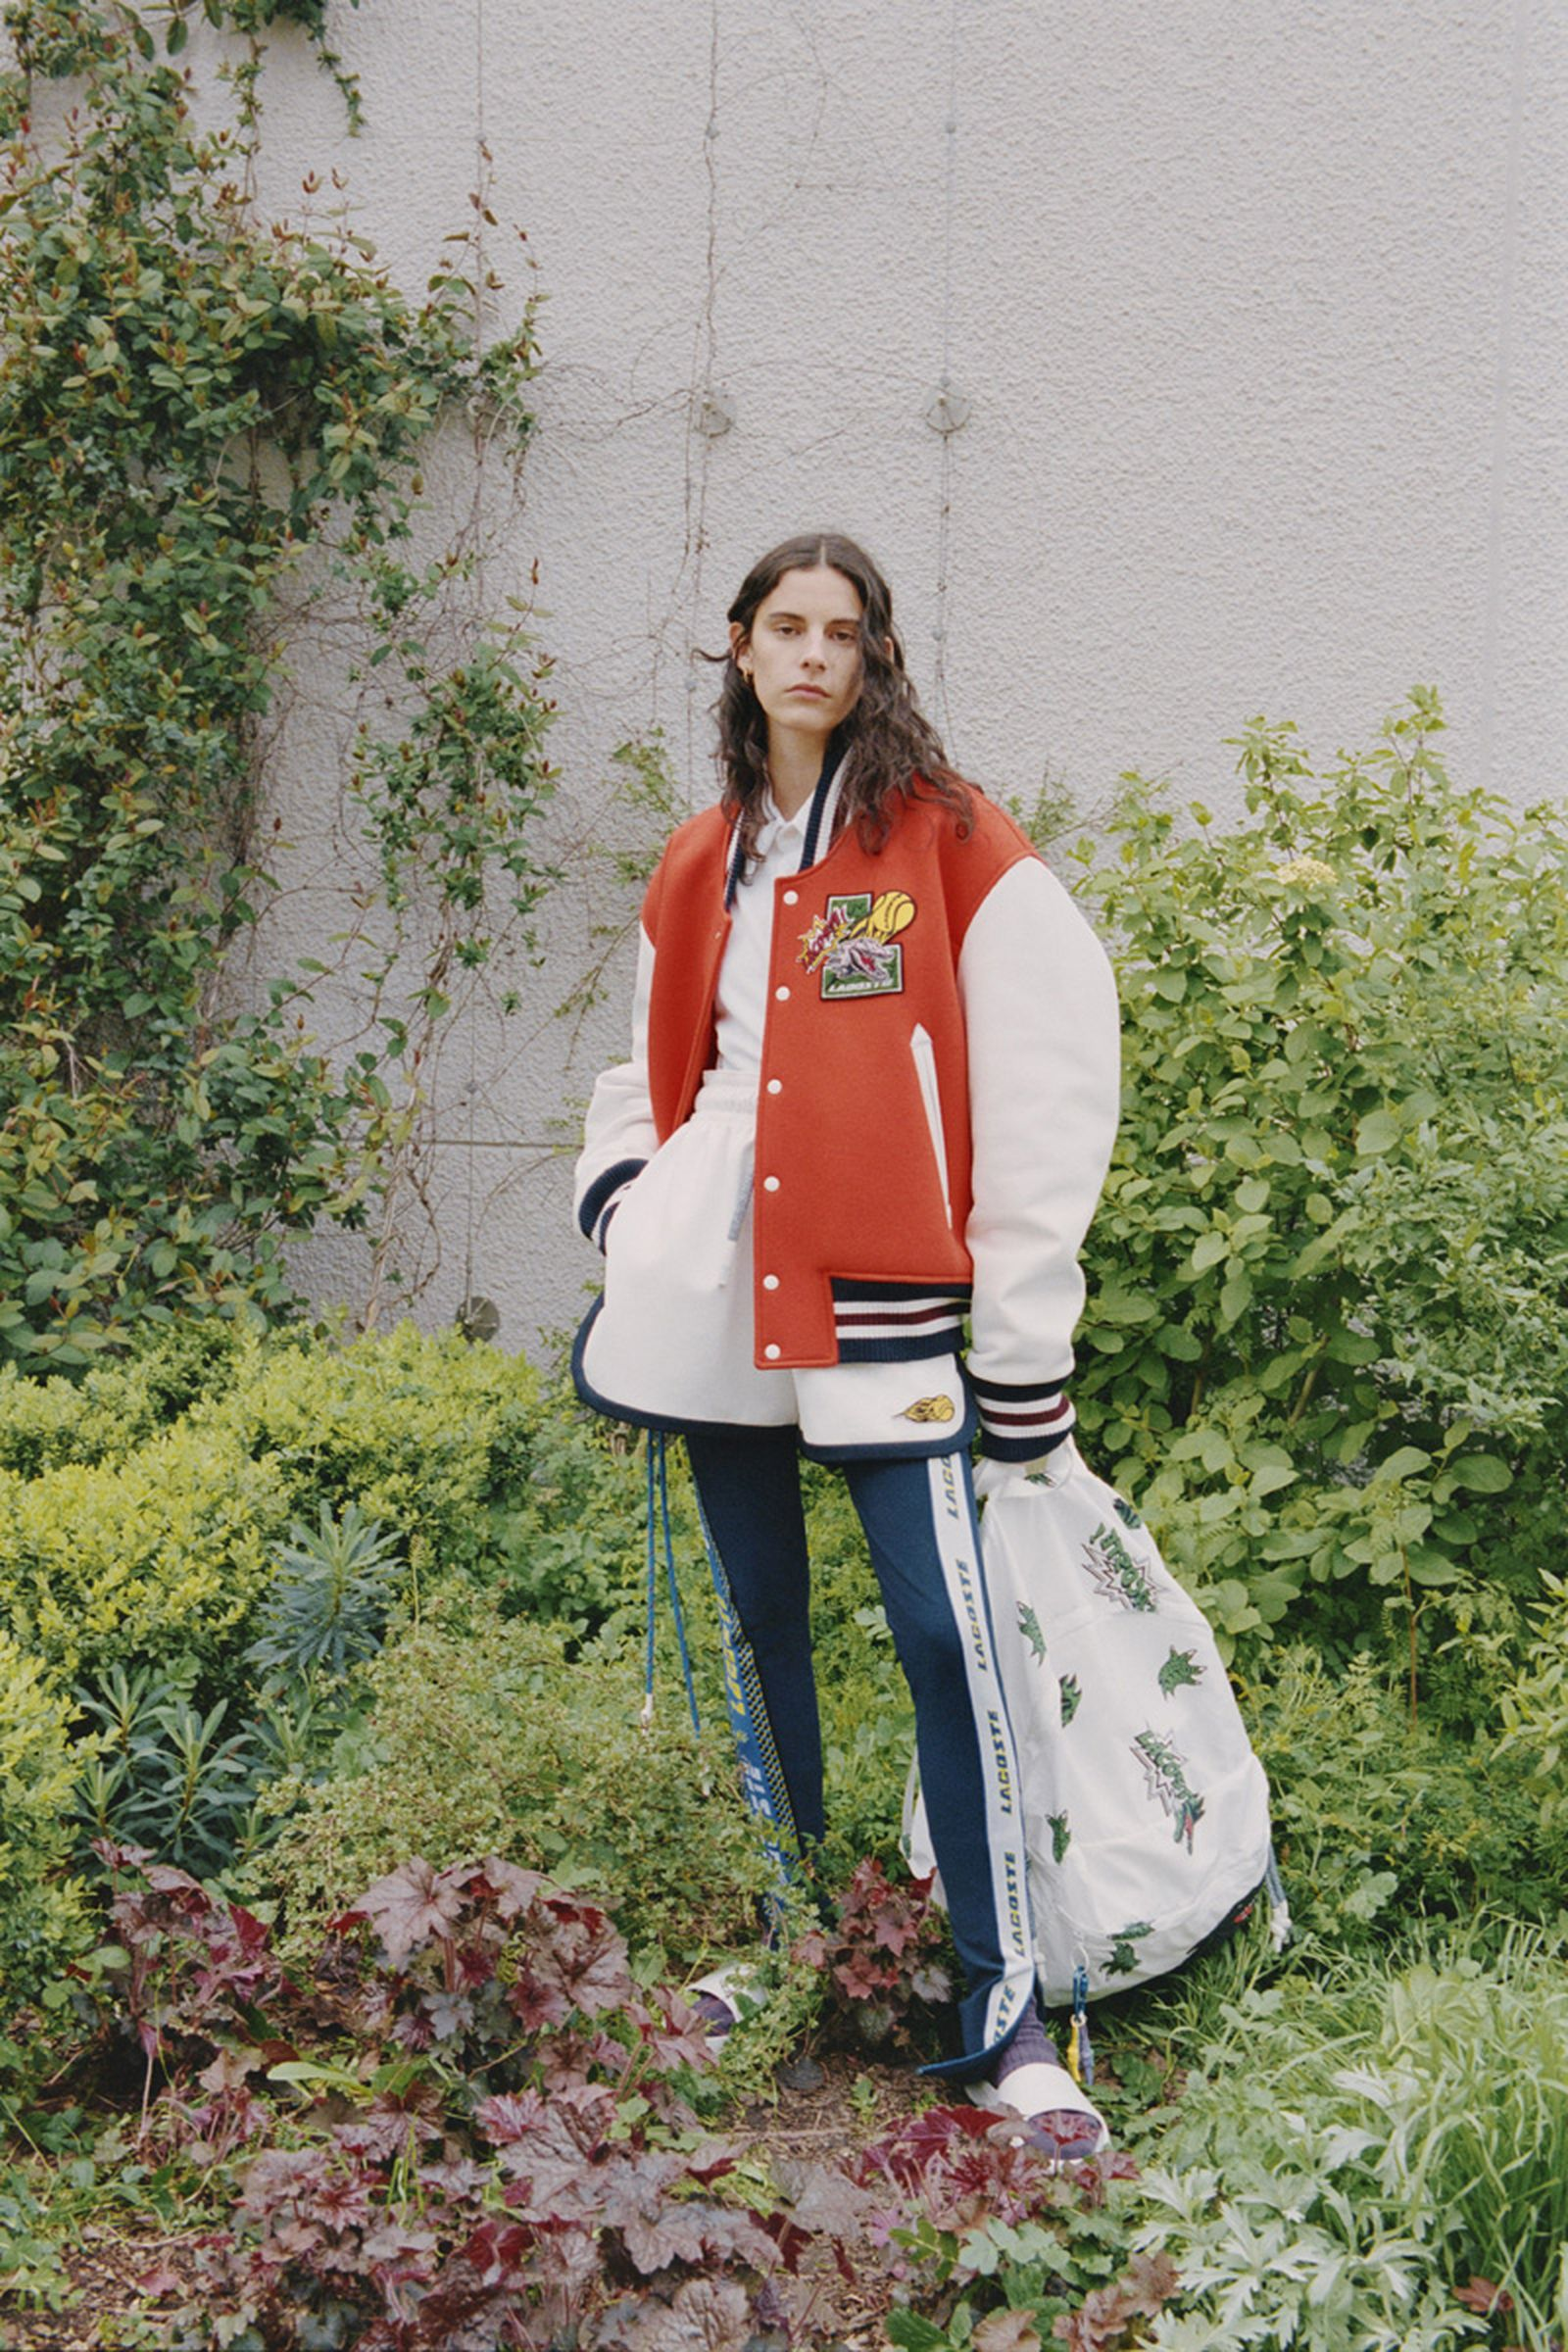 lacoste-fall-winter-2021-collection-lookbook-15